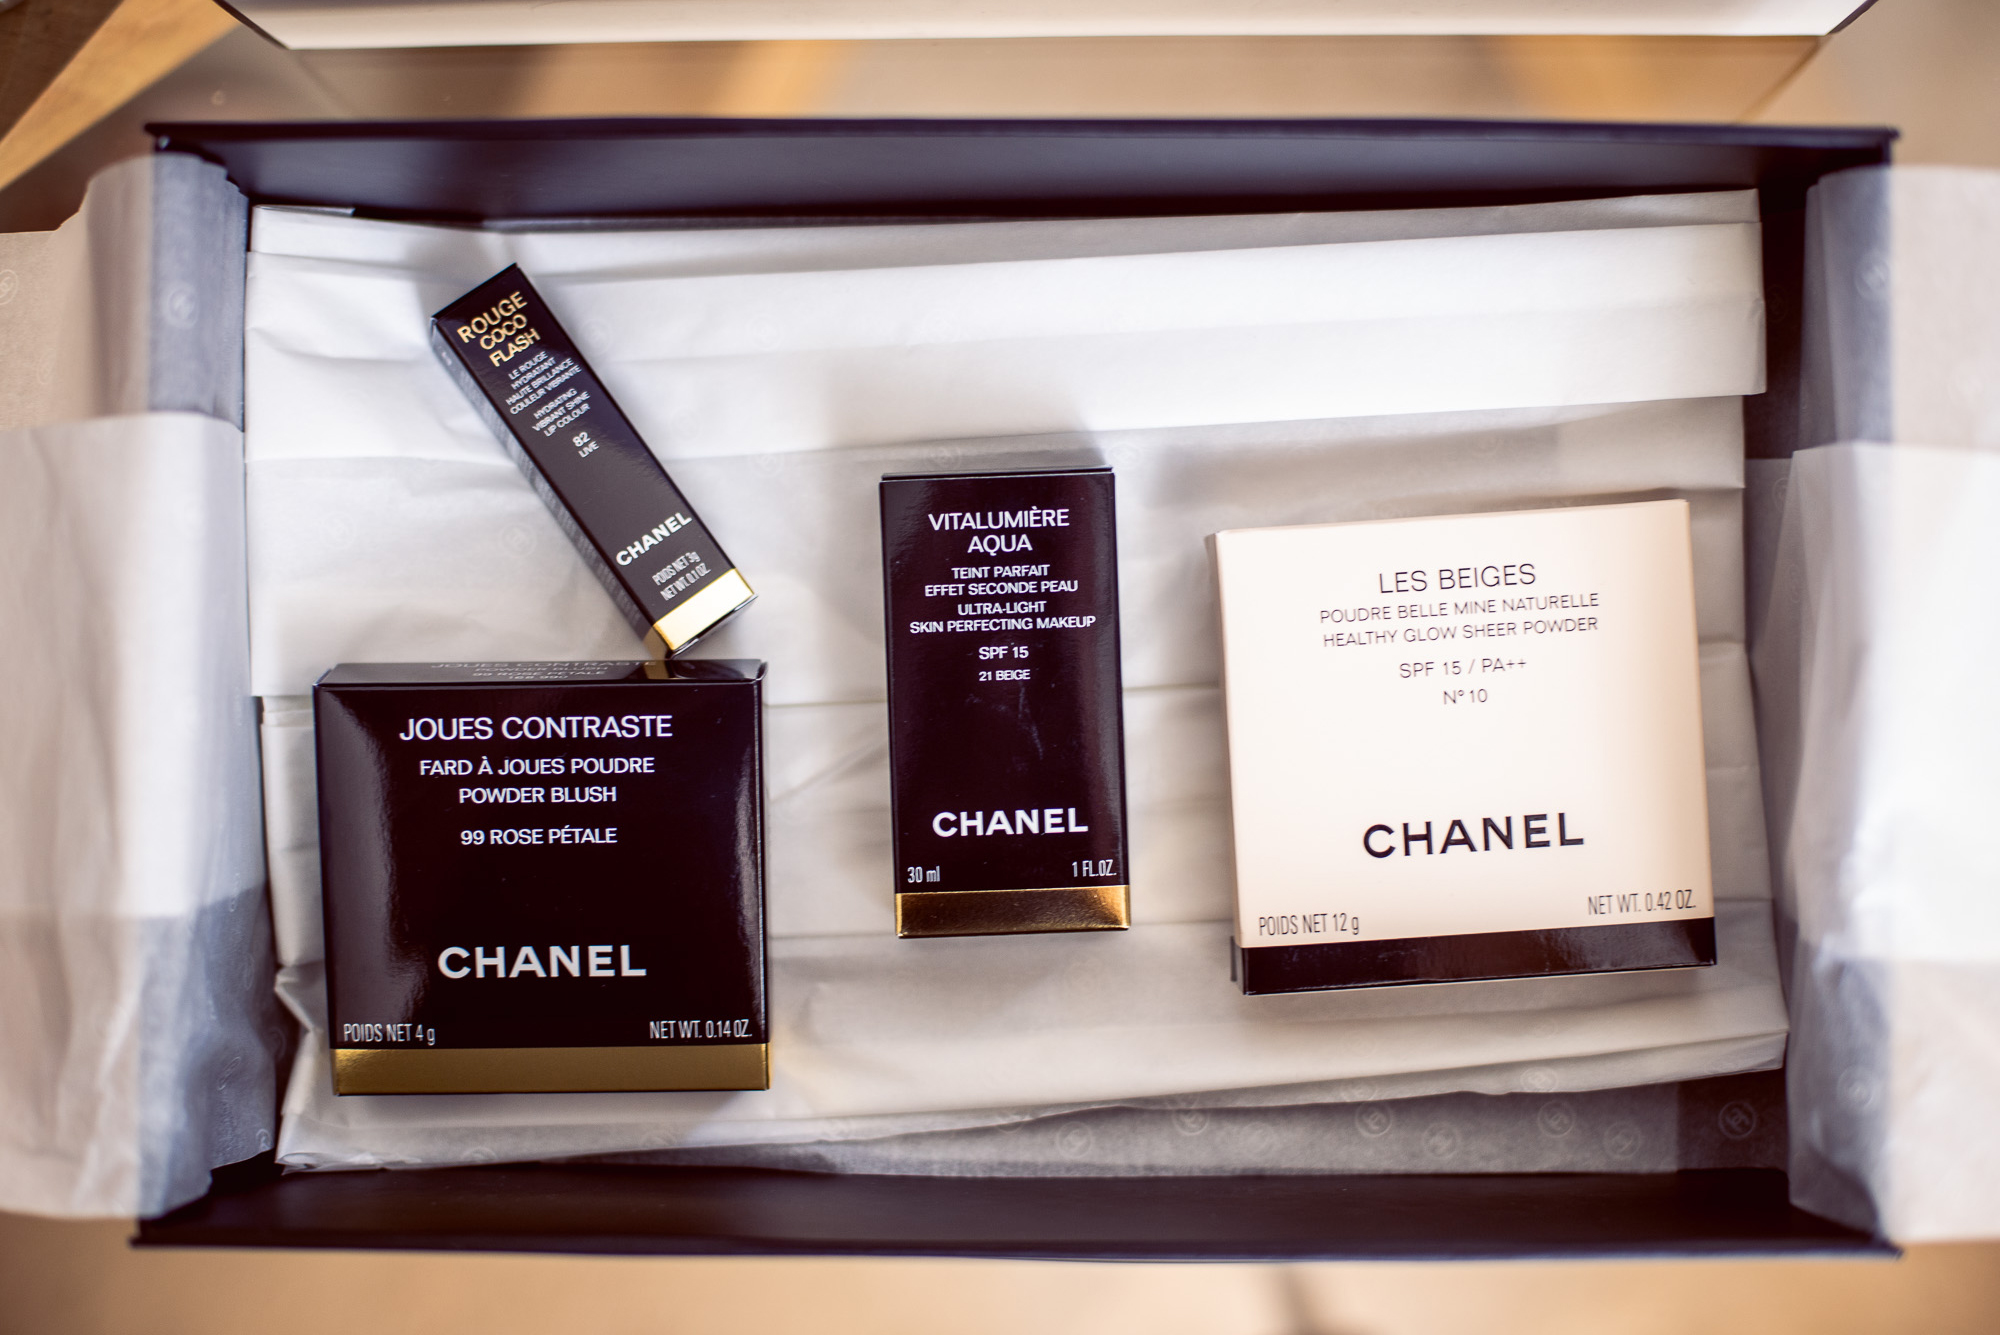 Carley treated herself to some Chanel make up. -